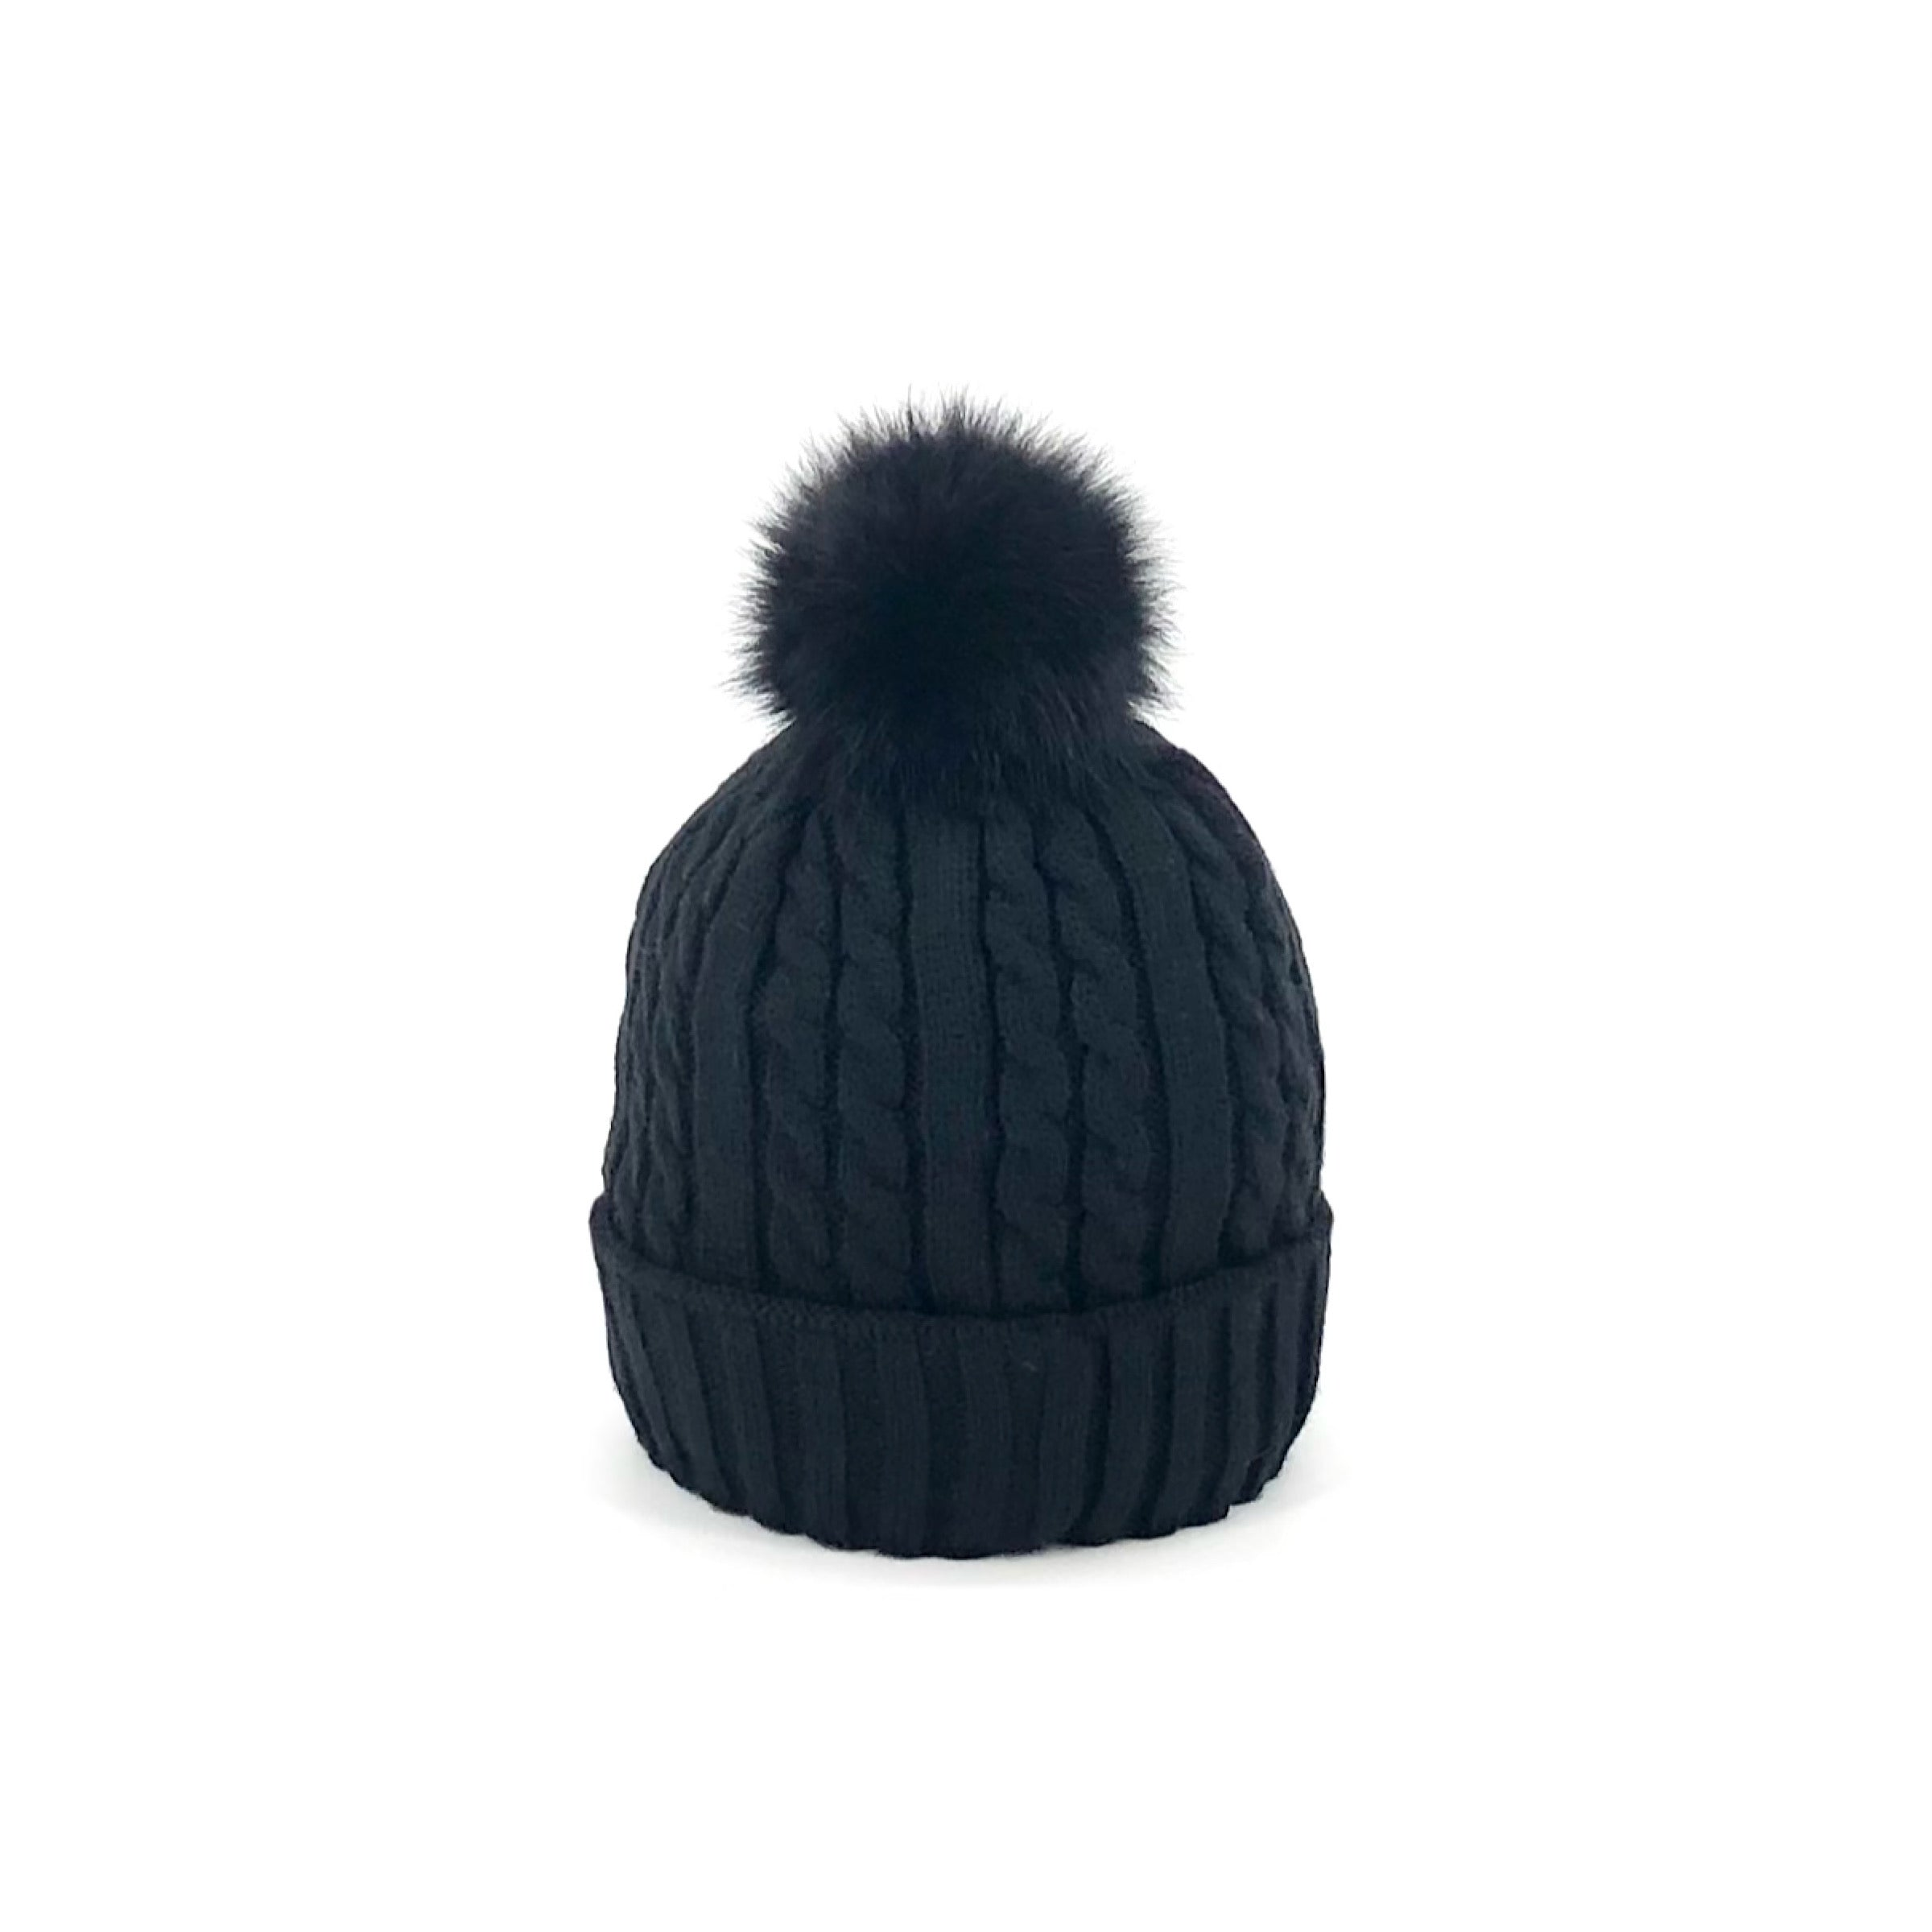 The Cable Knit Beanie in Black with Fleece Lining & Black Fox Pom